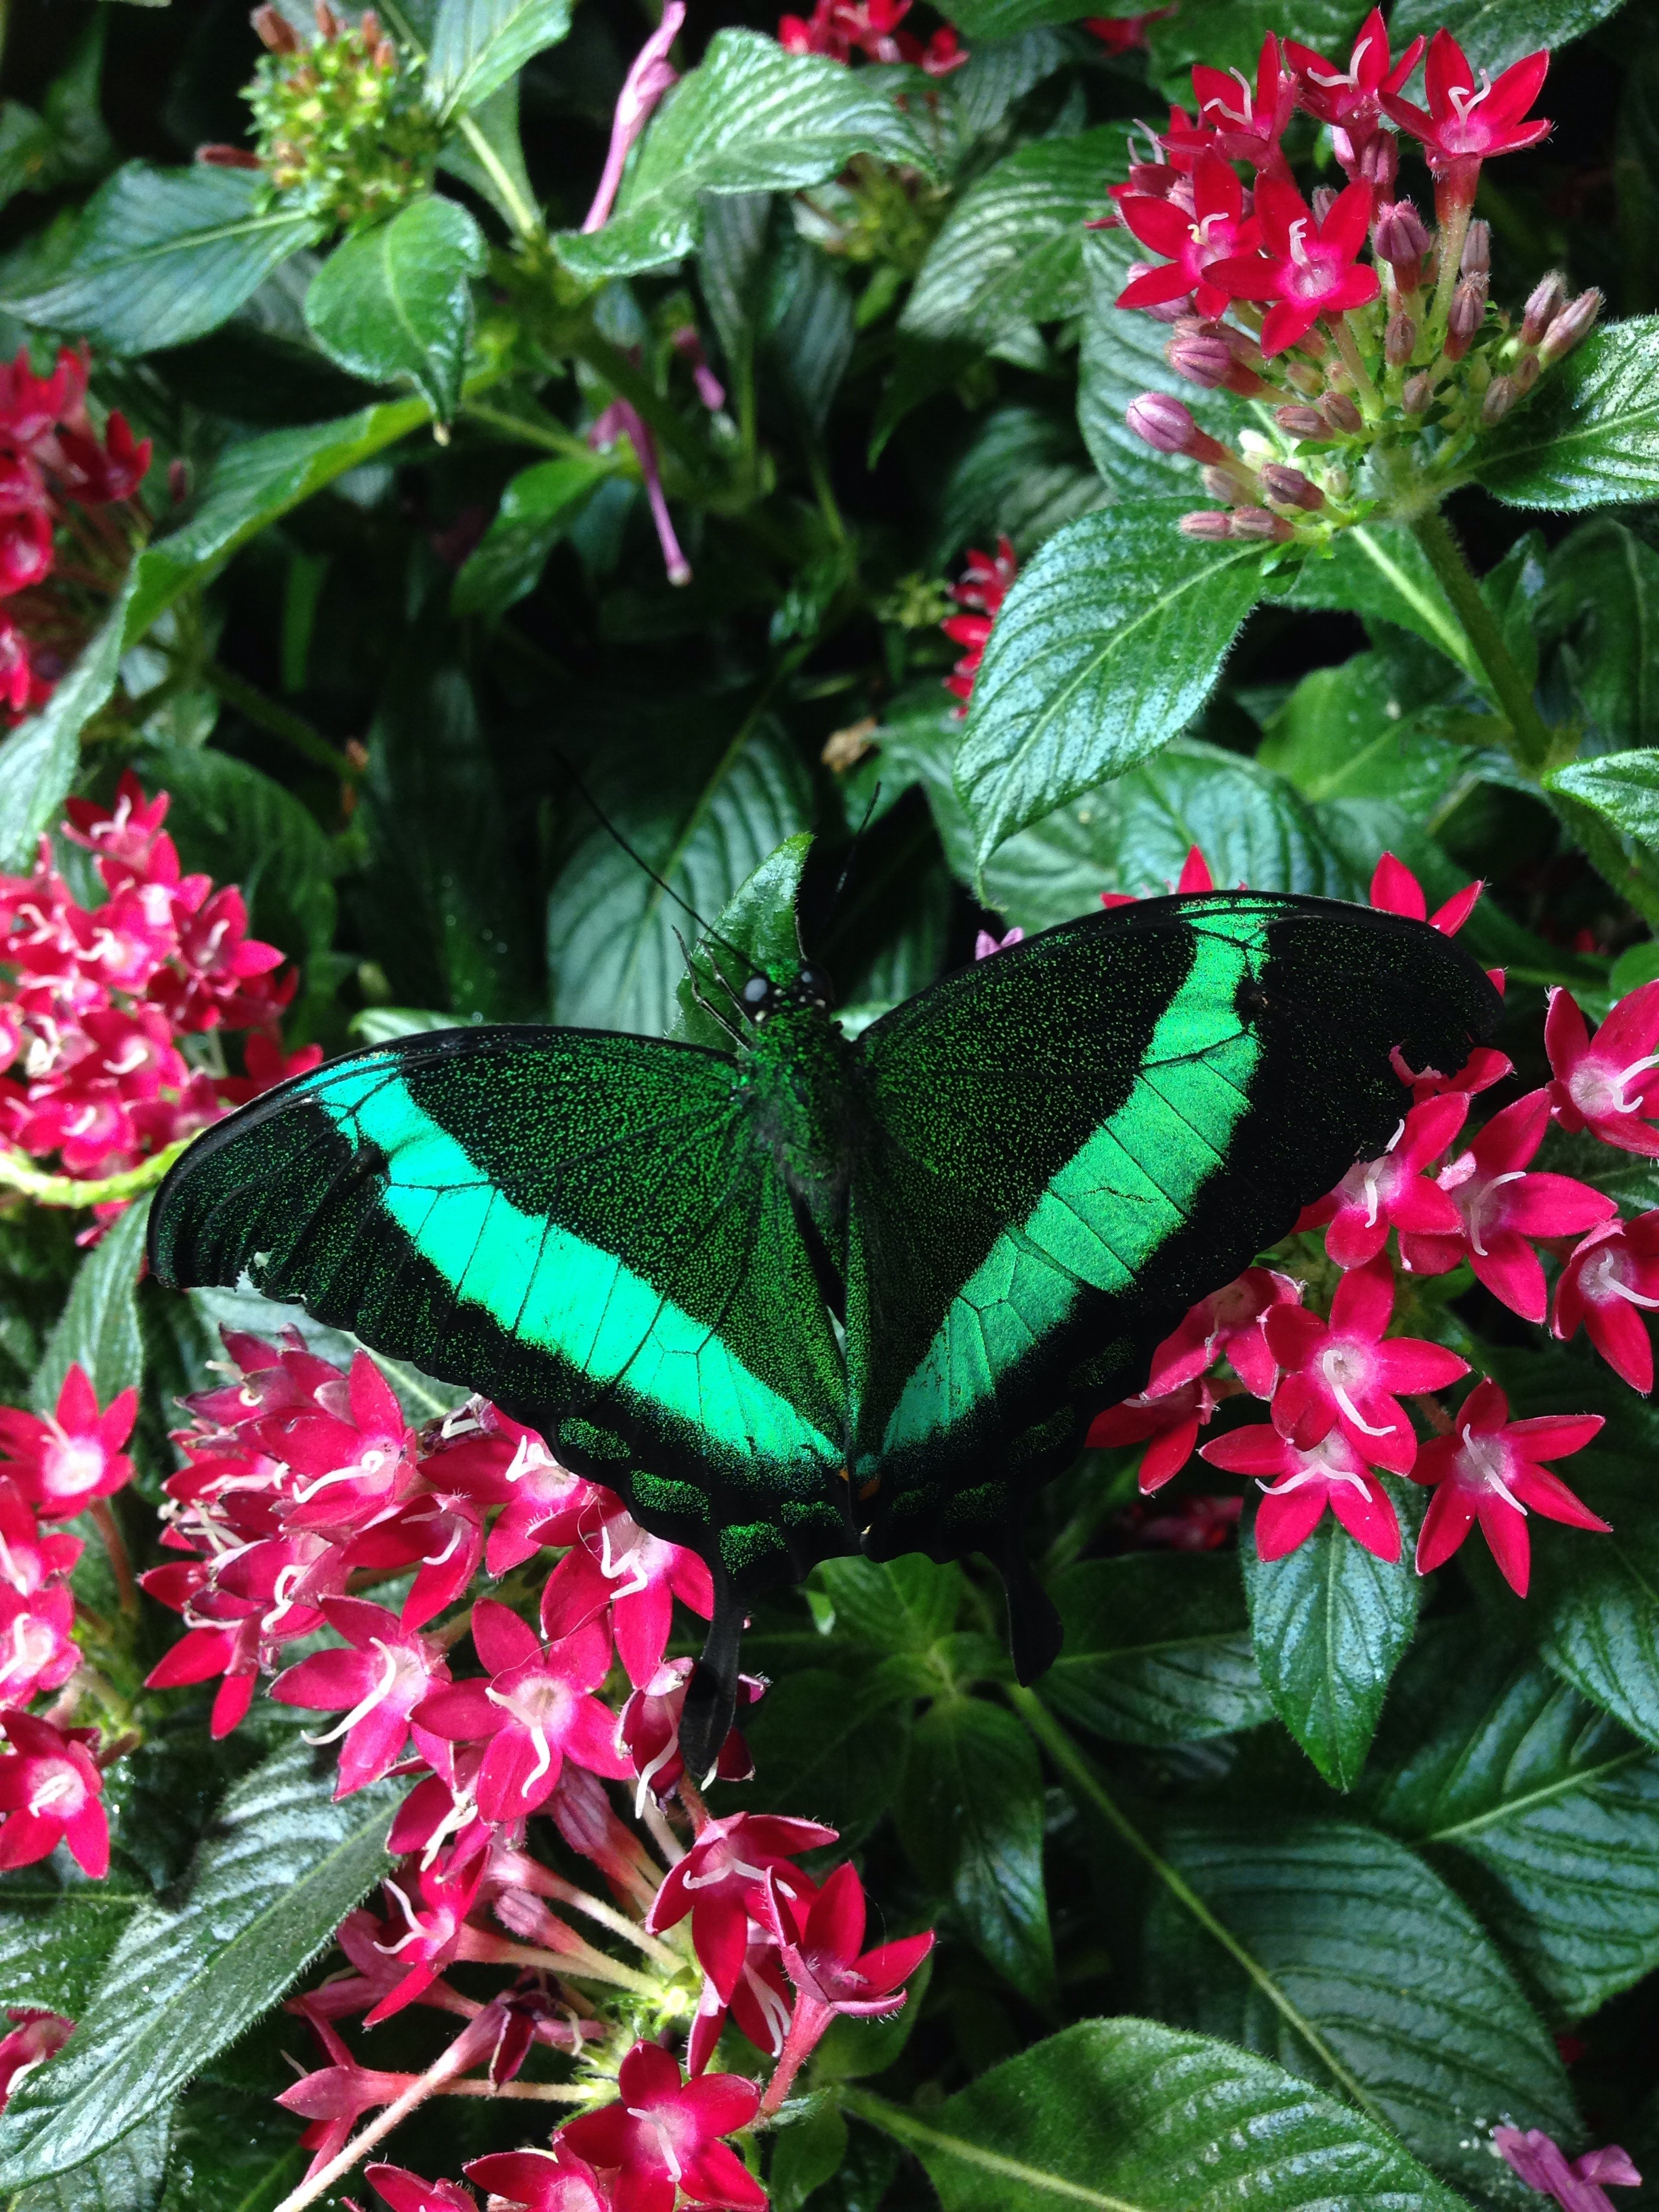 Smithsonian Live Butterfly Exhibit - Taken by Me - April 2014